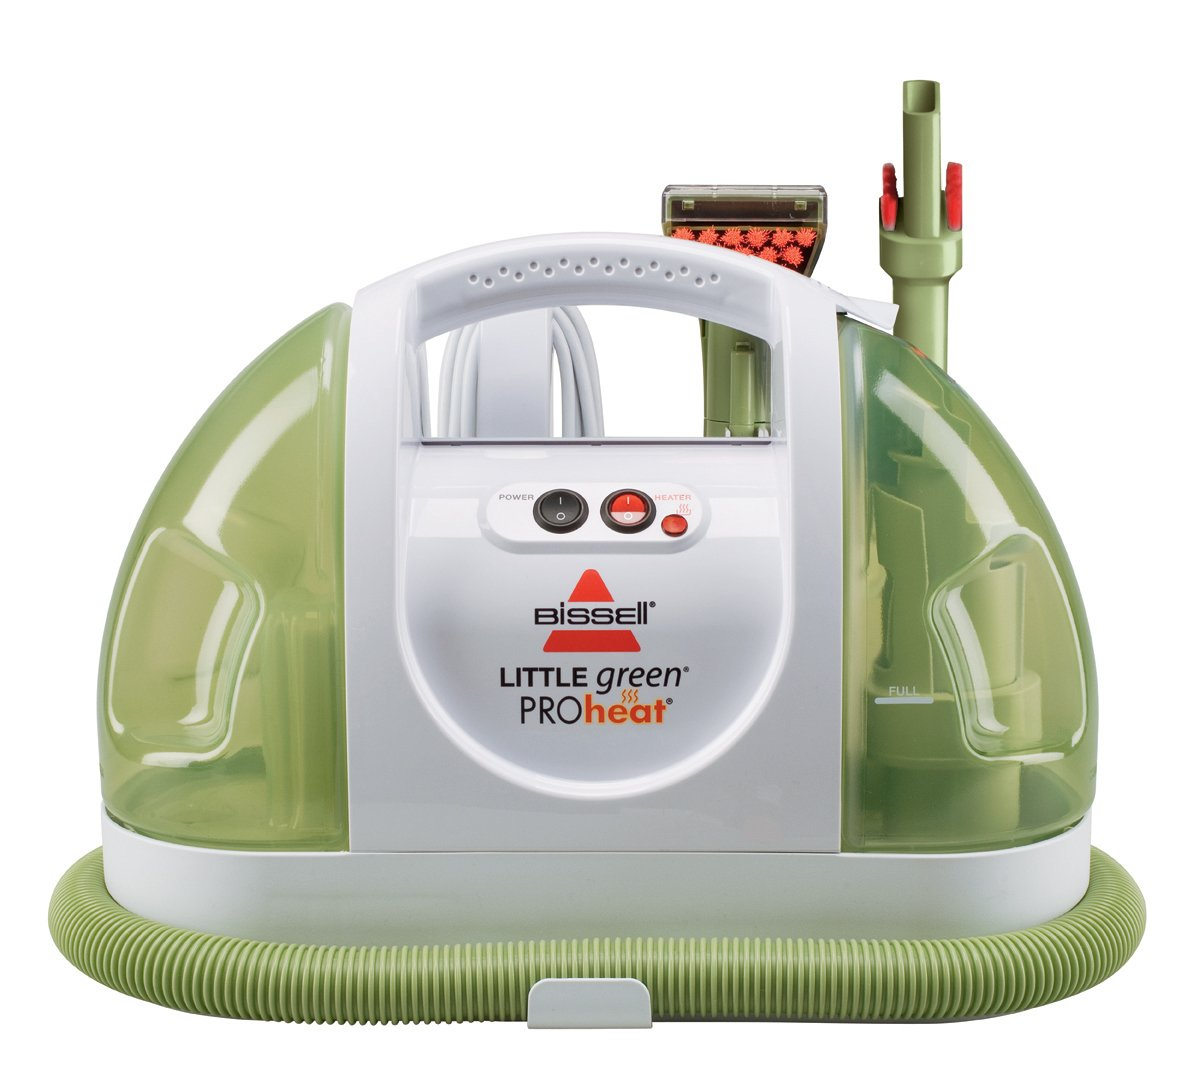 Bissell Little Green ProHeat Compact Multi-Purpose Carpet Cleaner 14259